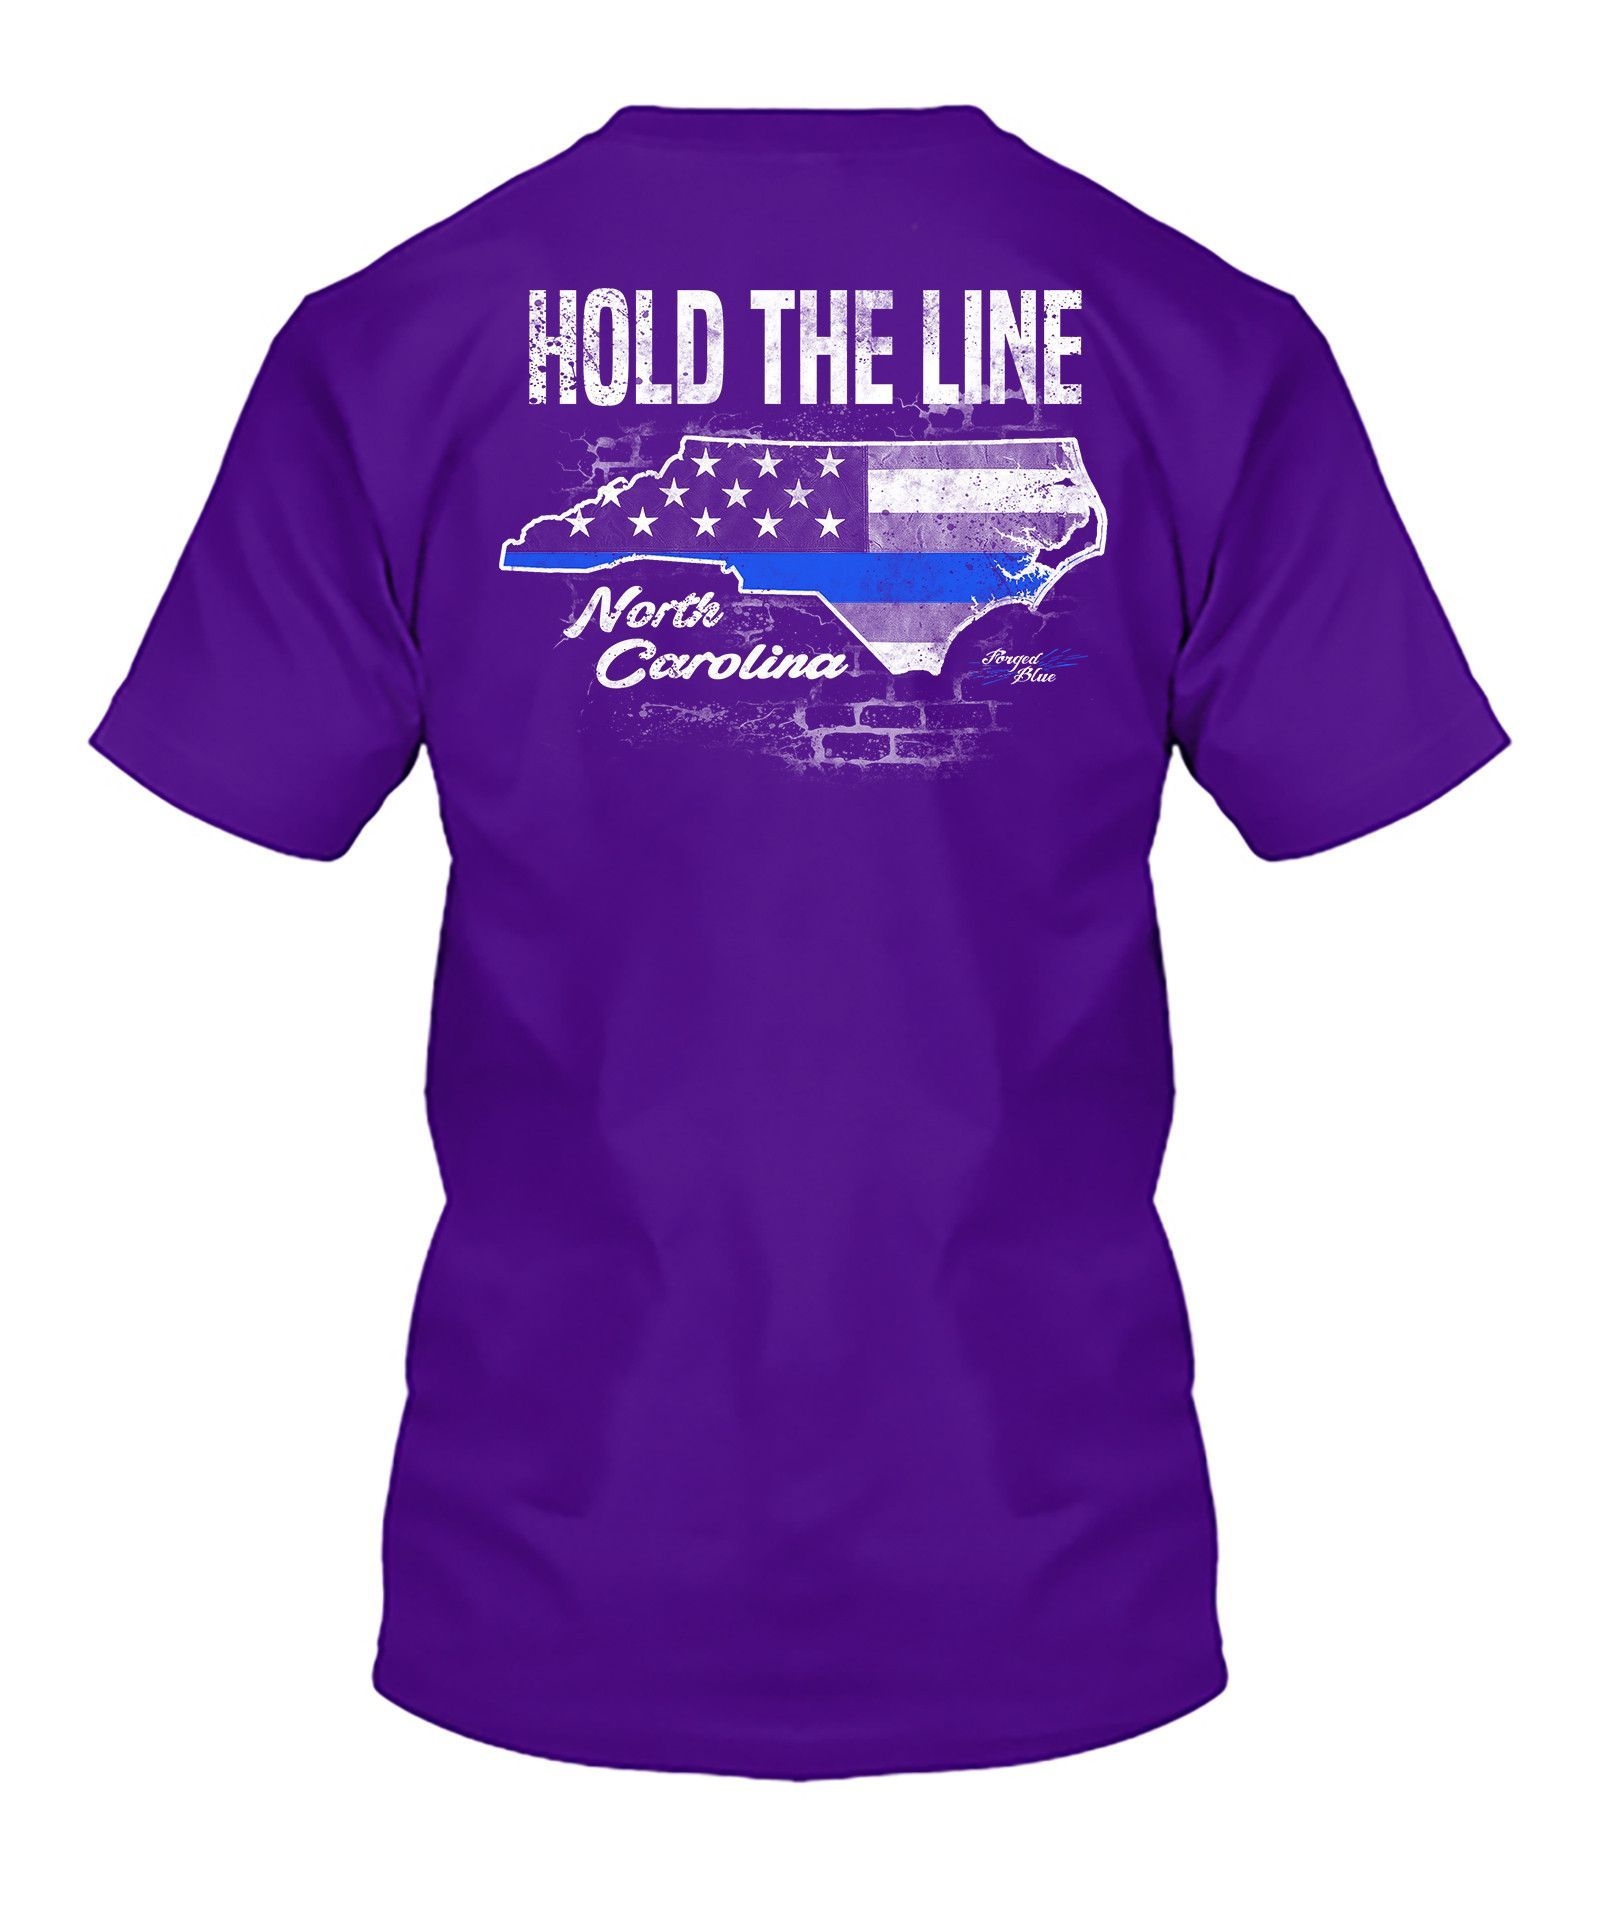 Hold The Line NC T-Shirt